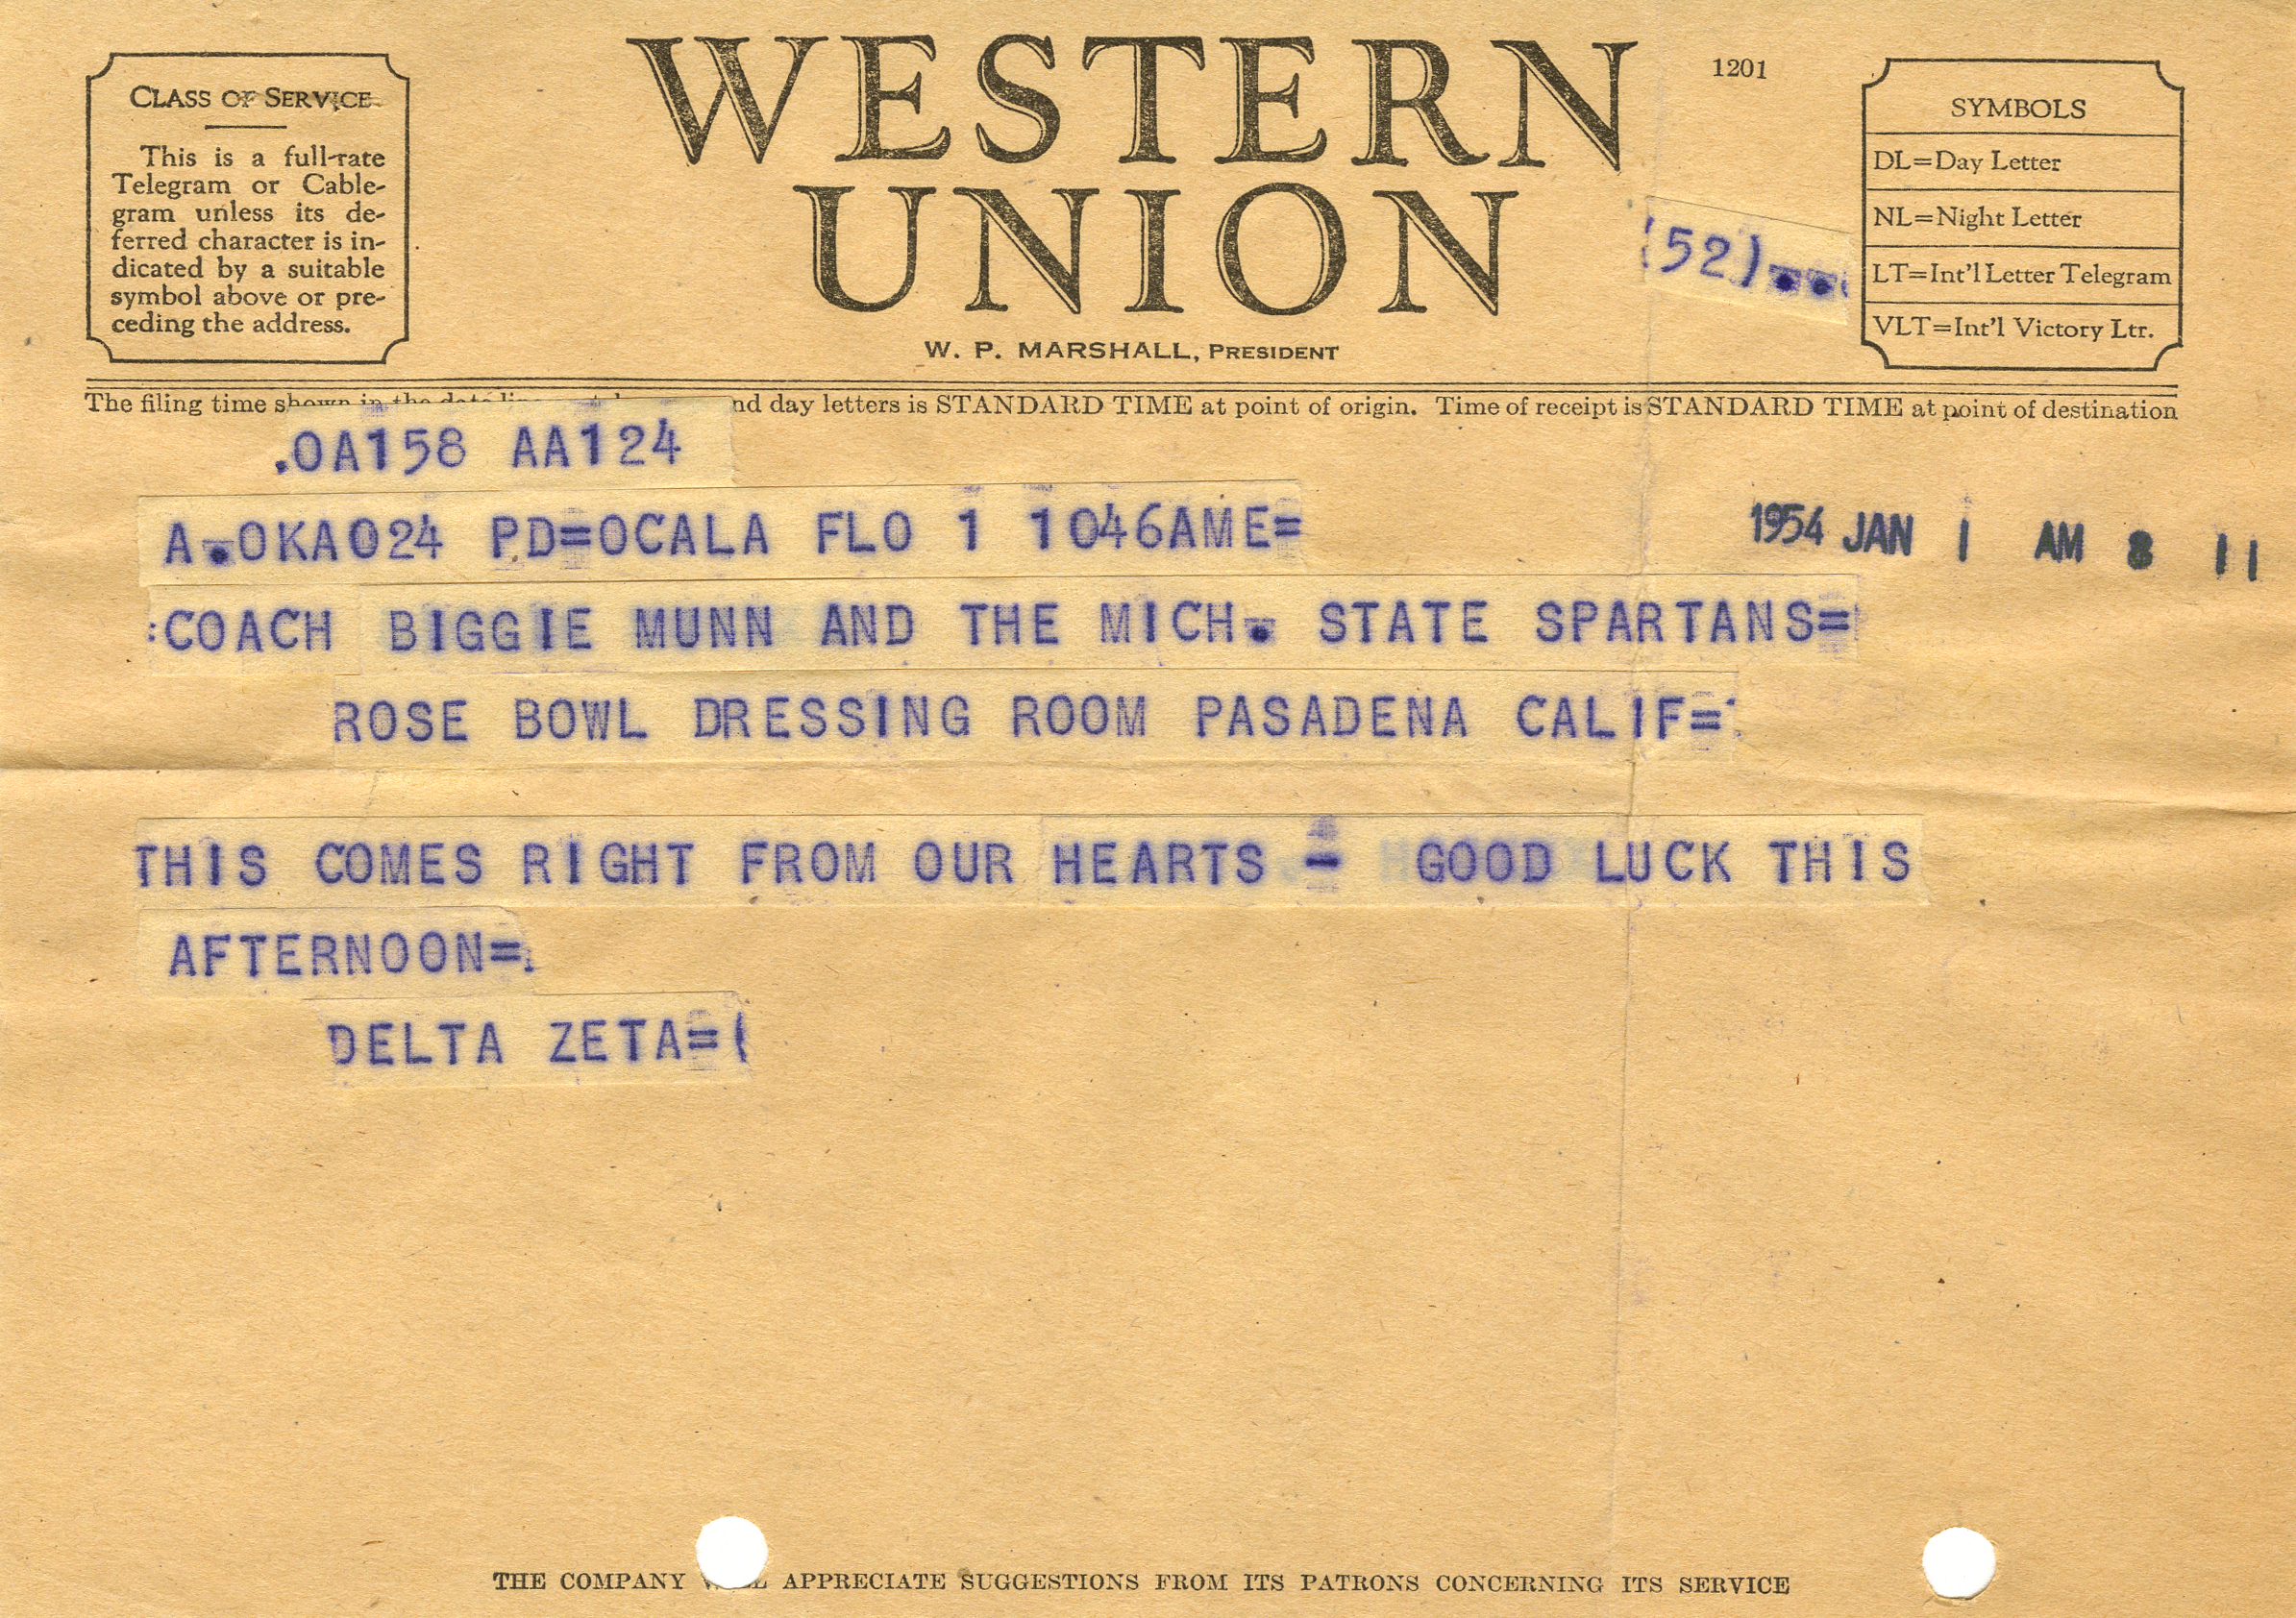 Good Luck telegram to Biggie Munn, 1954